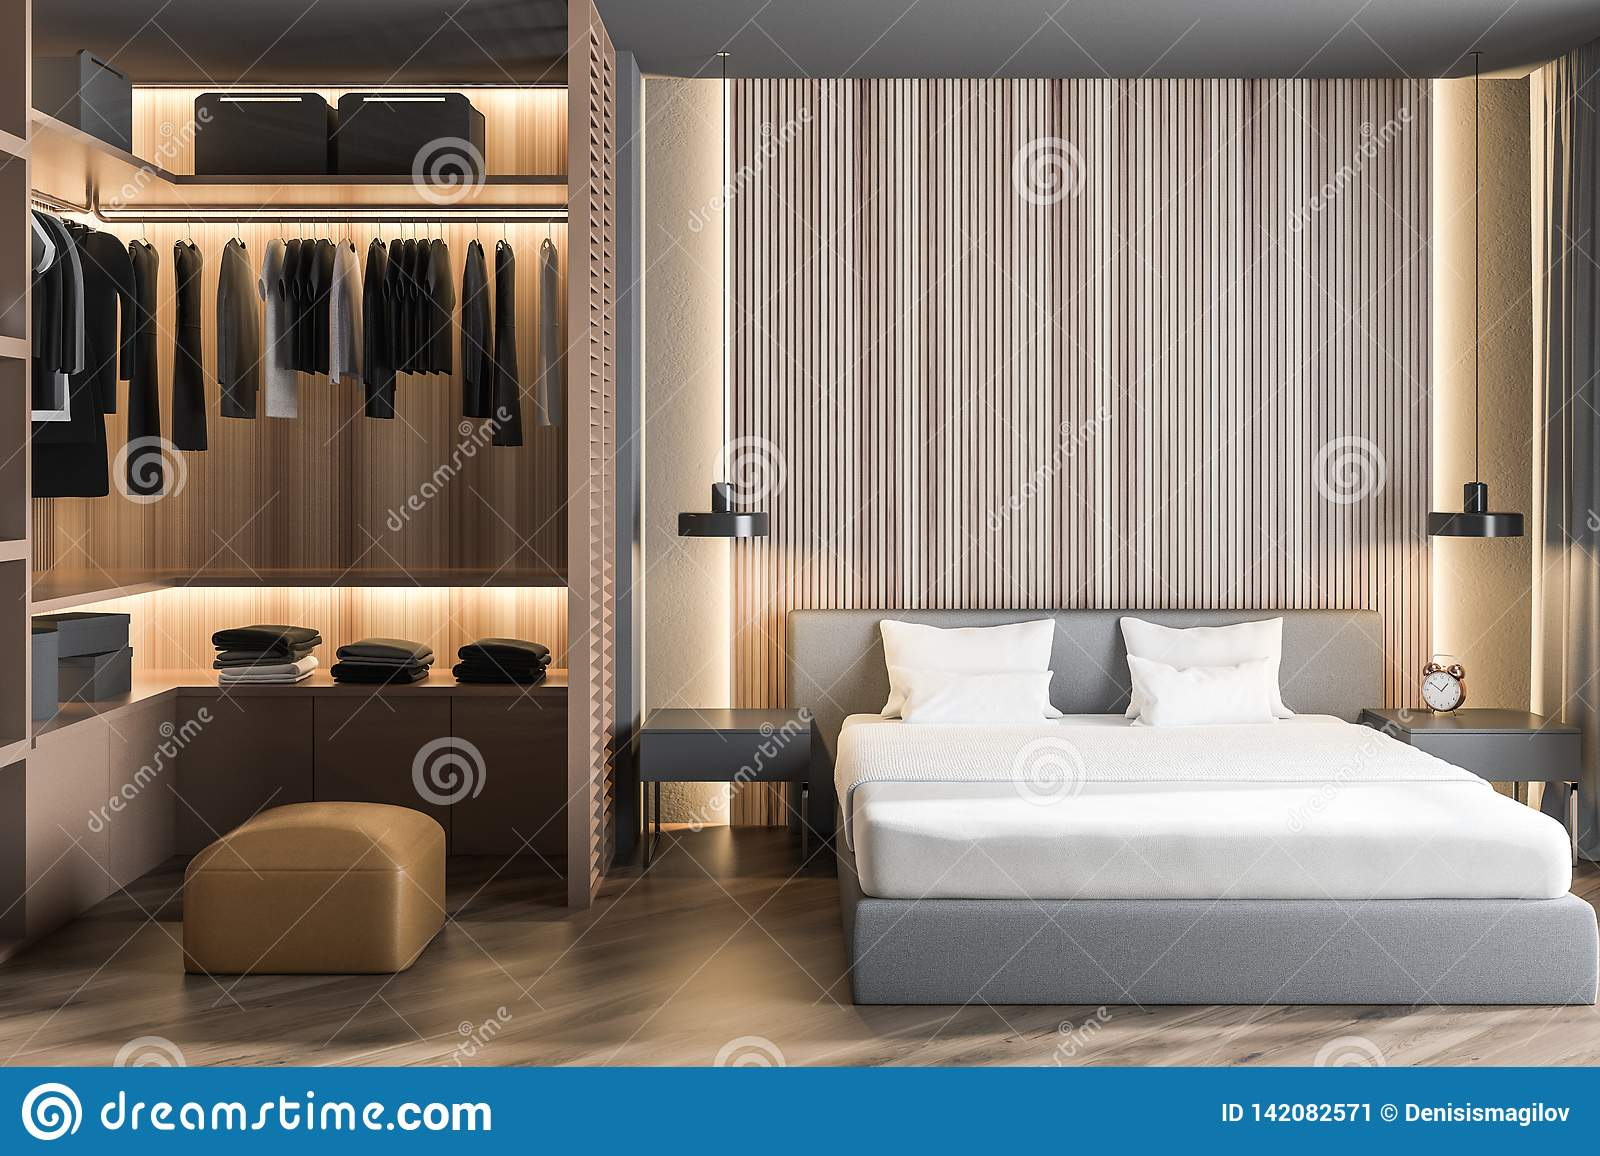 Wooden Master Bedroom Interior With Wardrobe Stock Illustration Illustration Of Estate Contemporary 142082571